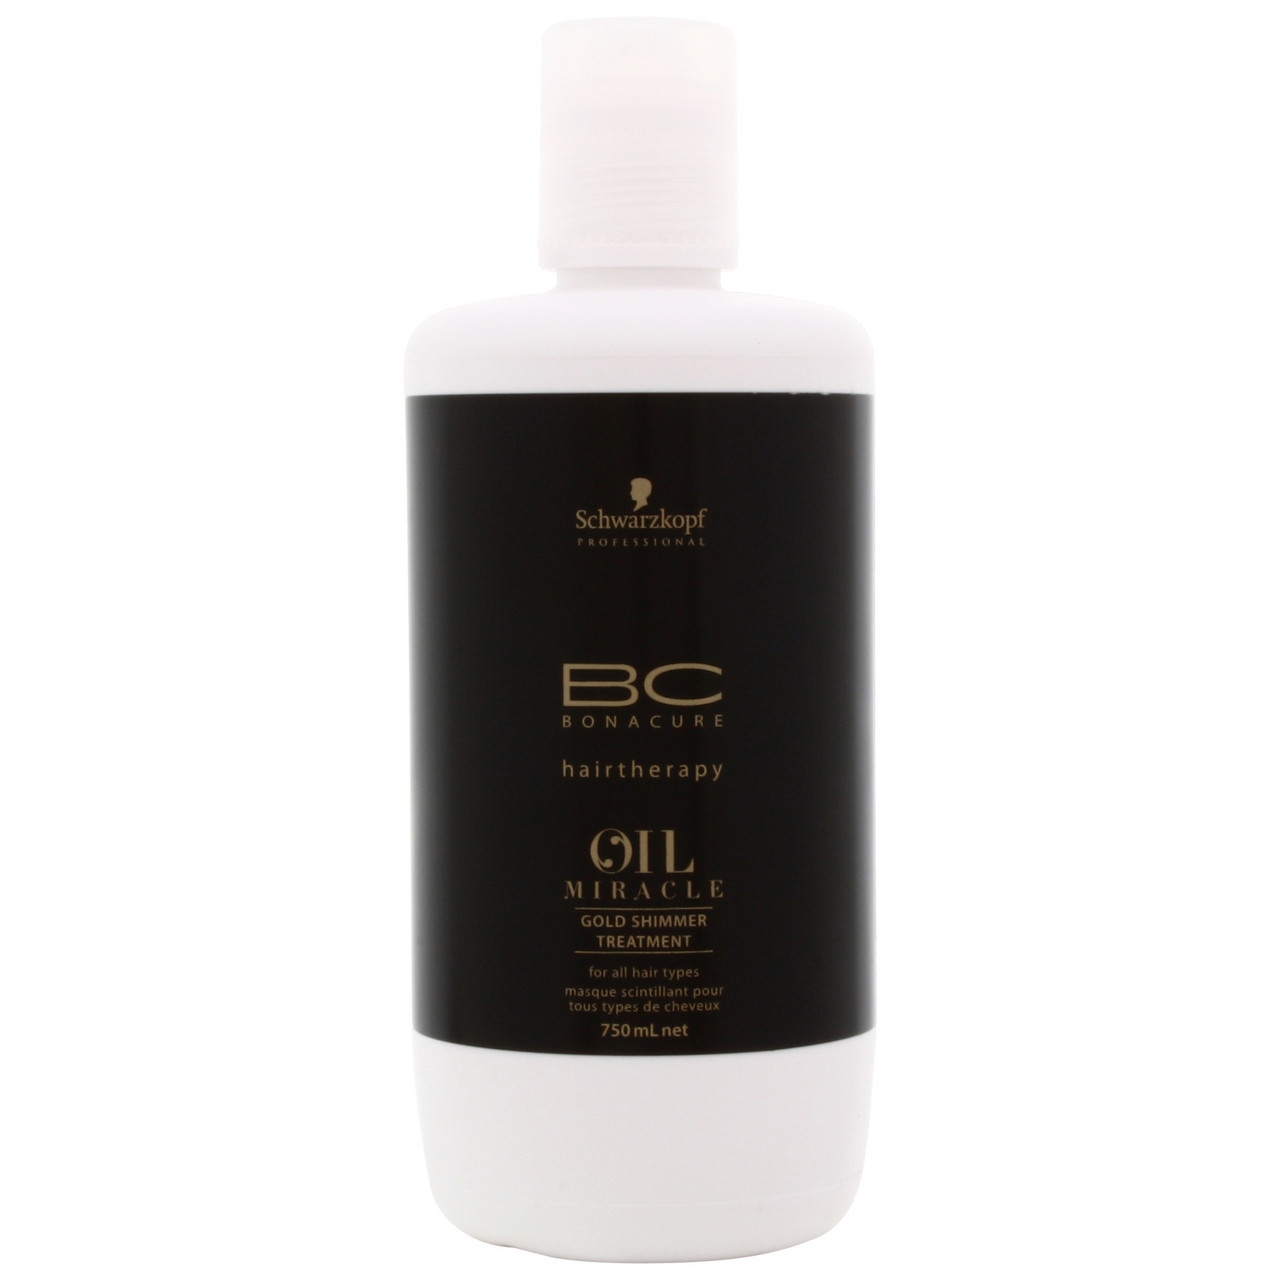 cad845d4e8 Schwarzkopf BC Oil Miracle Gold Shimmer Treatment 750ml. Price: £16.99.  Image 1